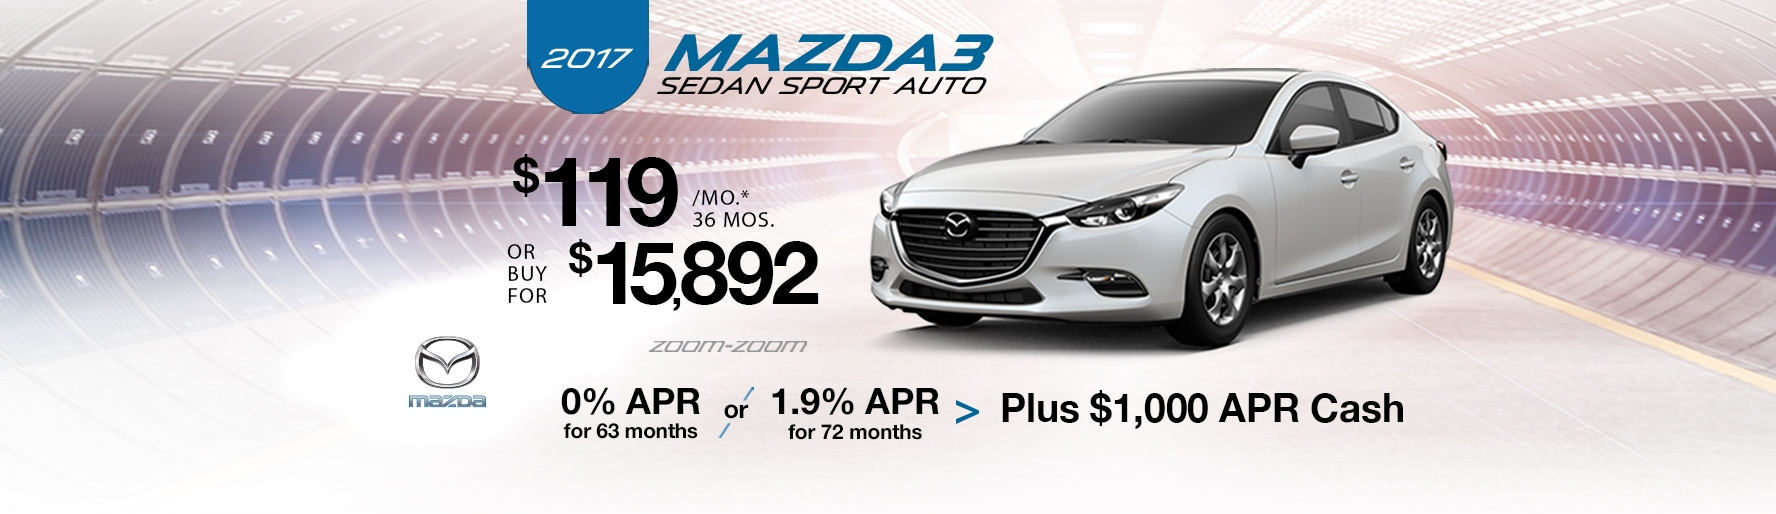 2017 Mazda3 Sedan Sport Auto Lease Special at Liberty Mazda